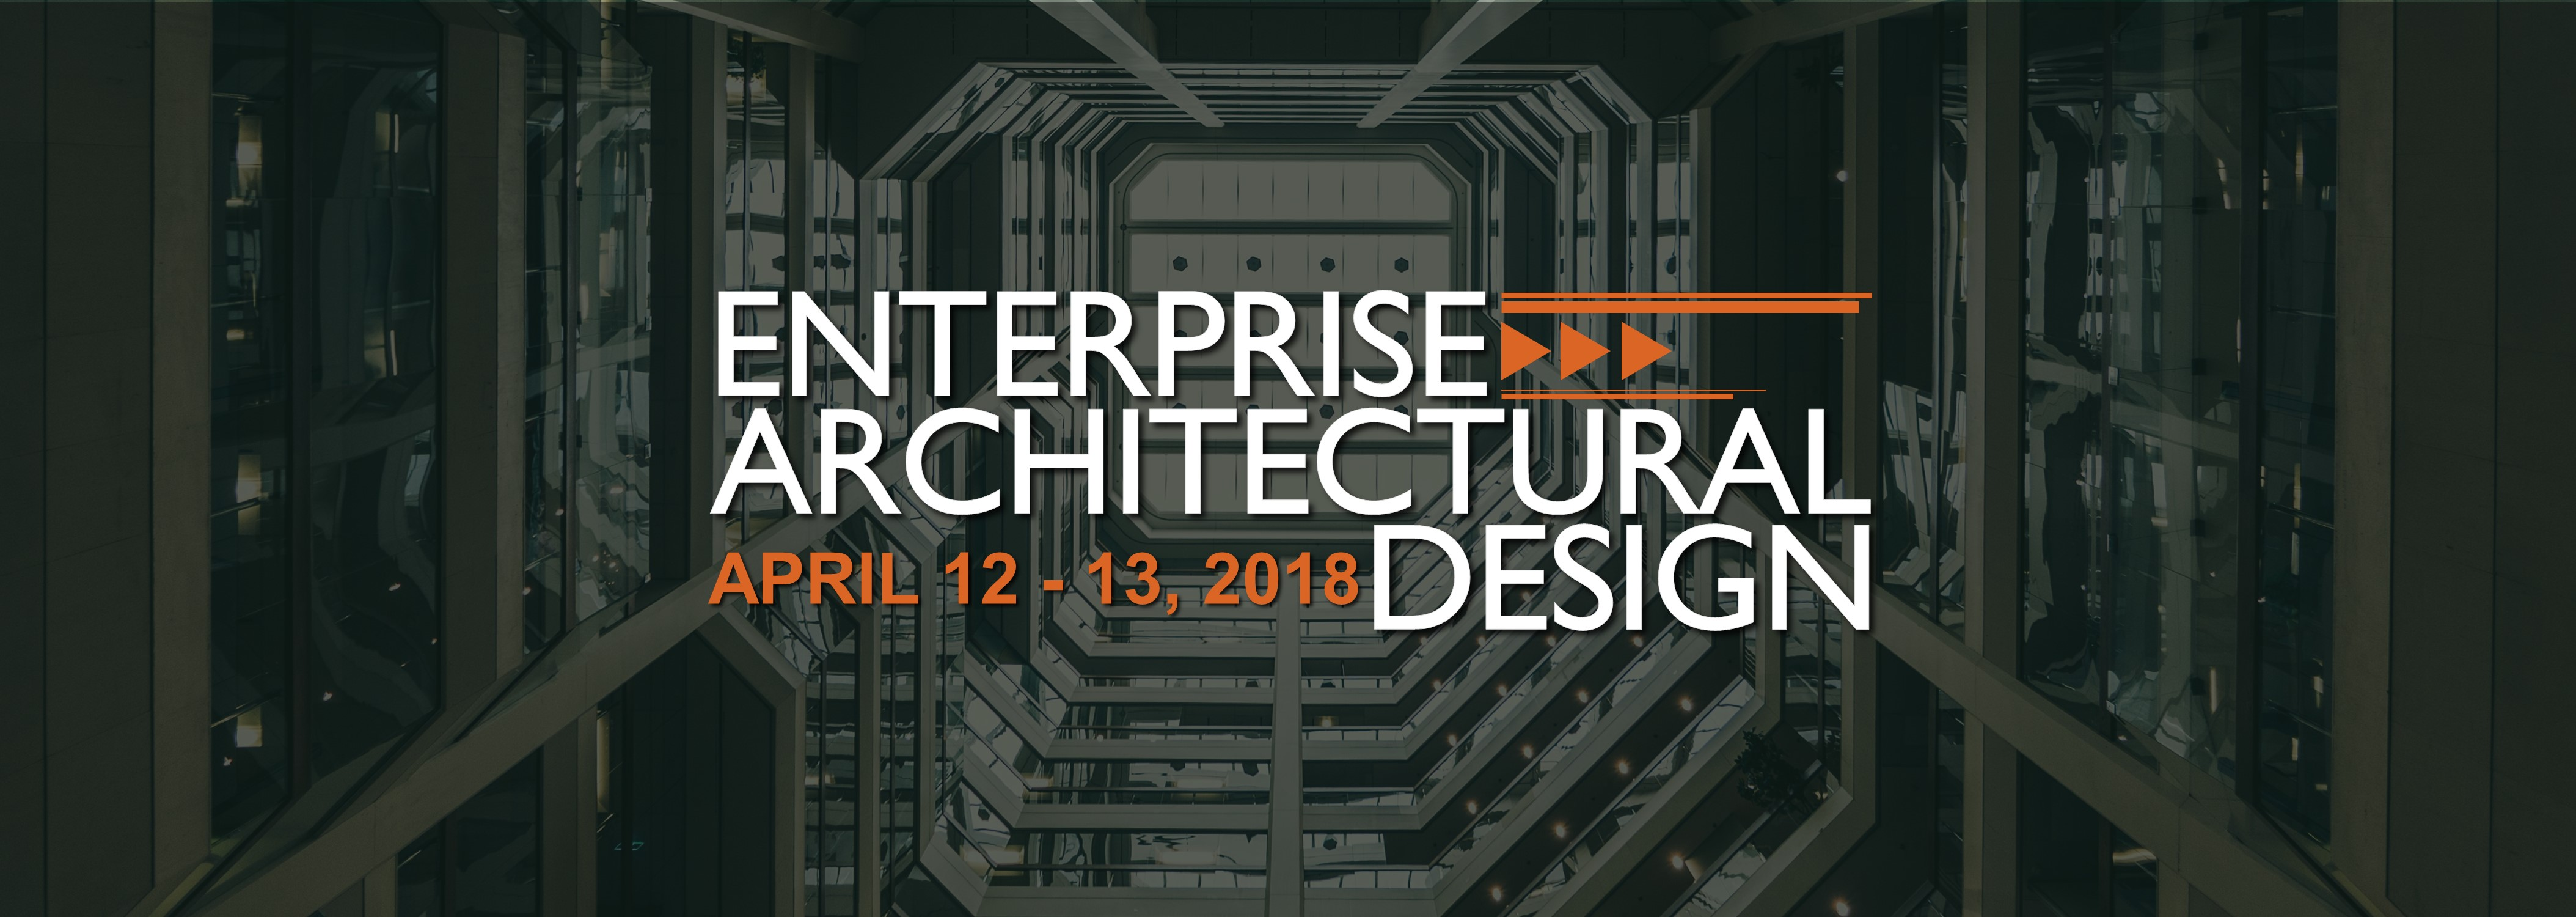 Enterprise Architectural Design on April 12 - 13, 2018